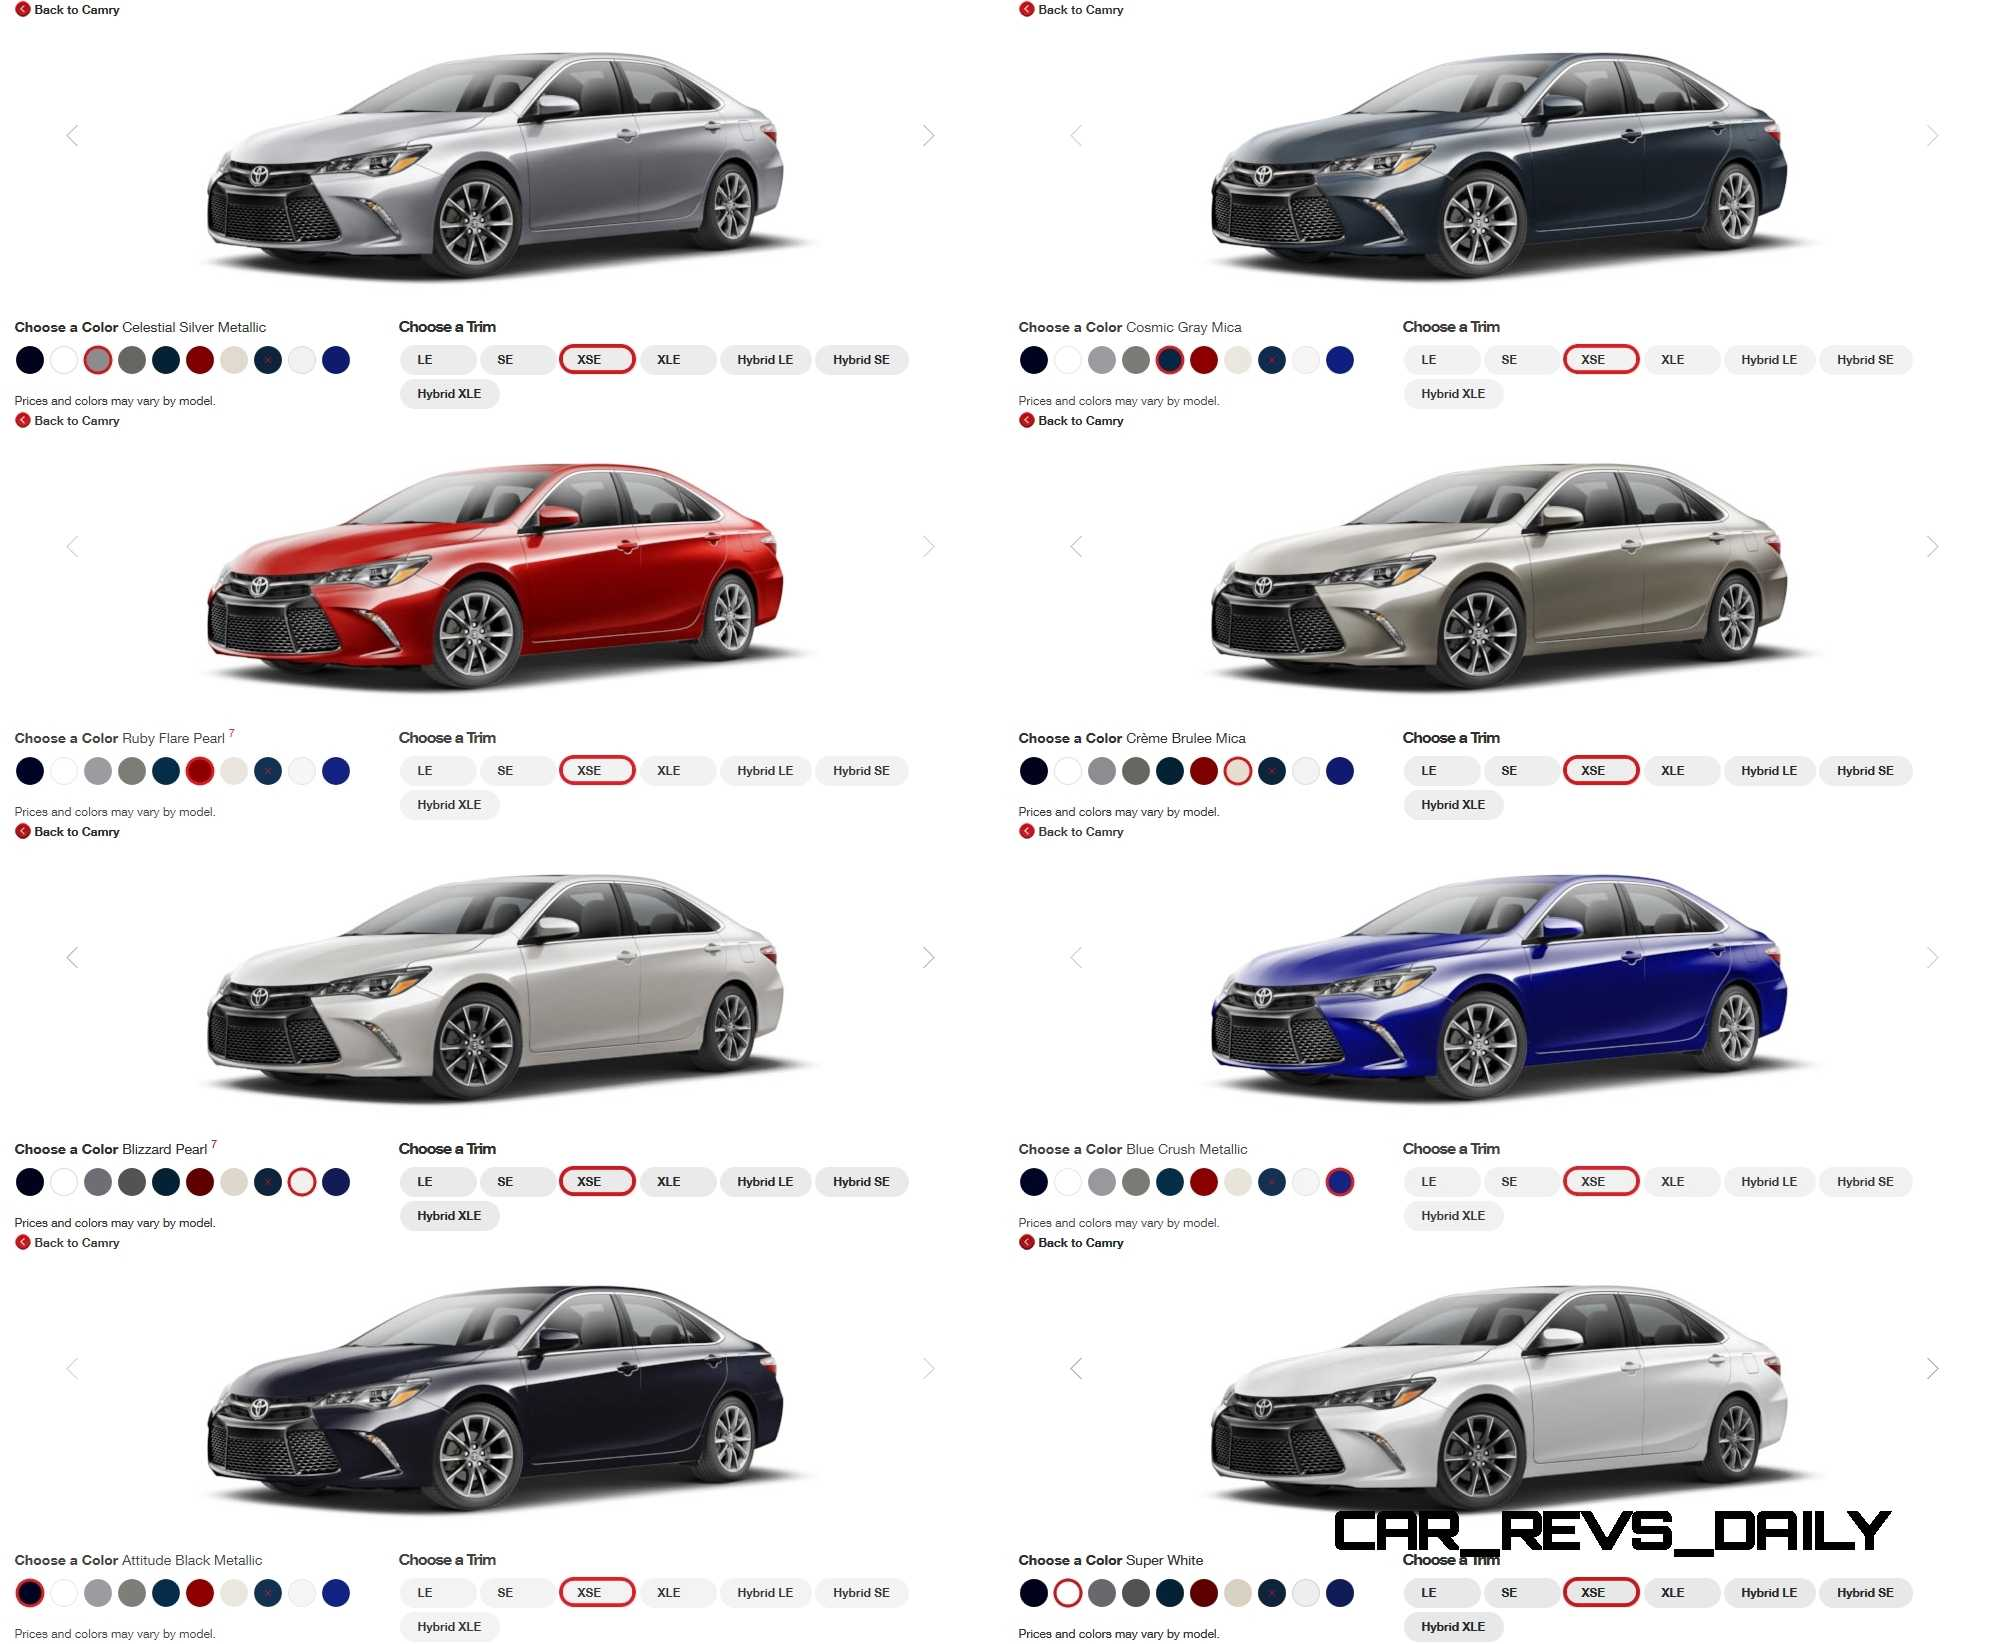 2015 Camry Colors >> 2015 Toyota Camry Colors And Trims Visual Buyers Guide